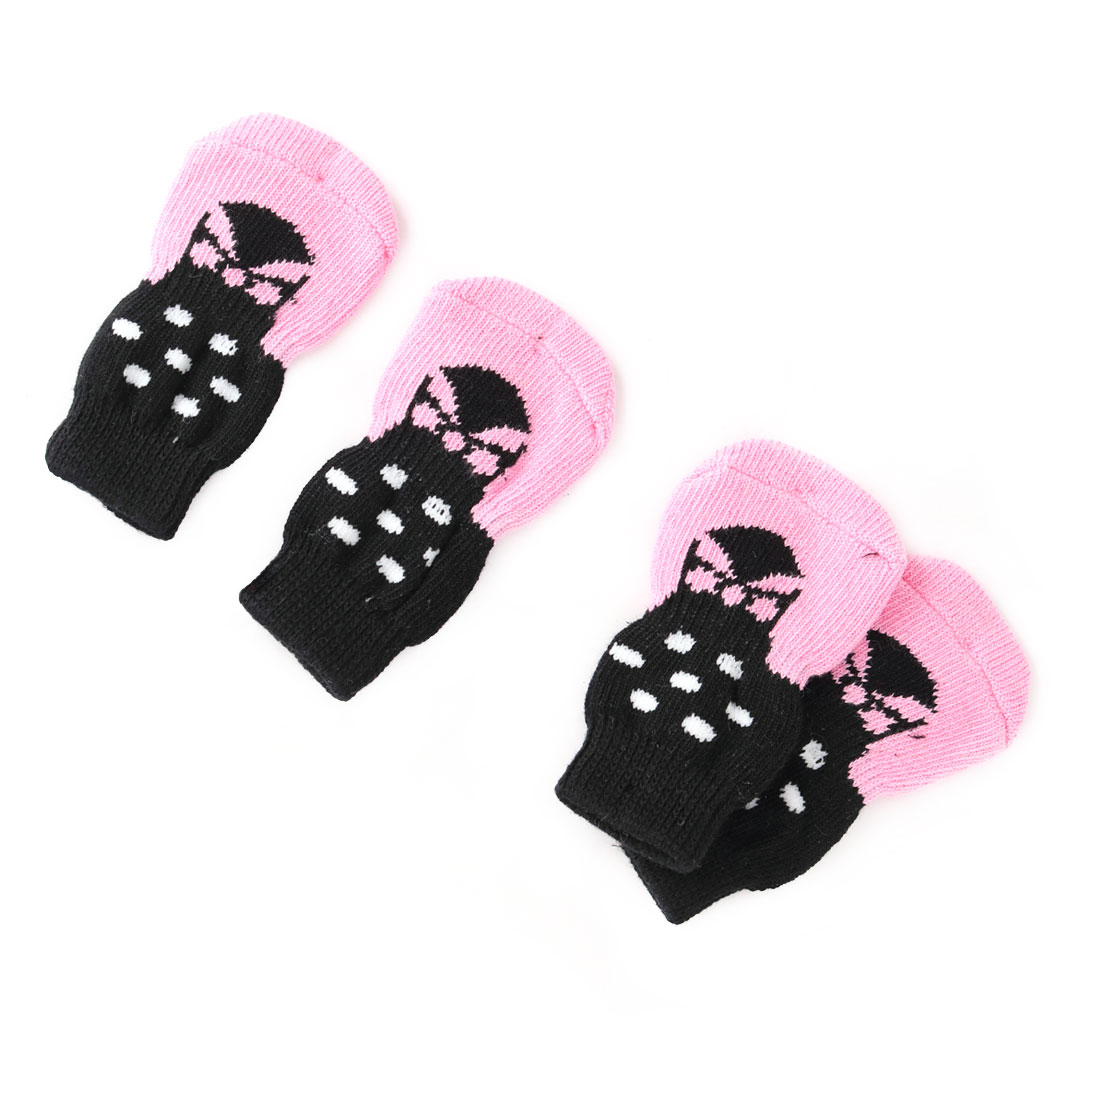 Unique Bargains Outdoor Walking Acrylic Paw Pattern Pet Puppy Dog Anti-slip Socks 2 Pair